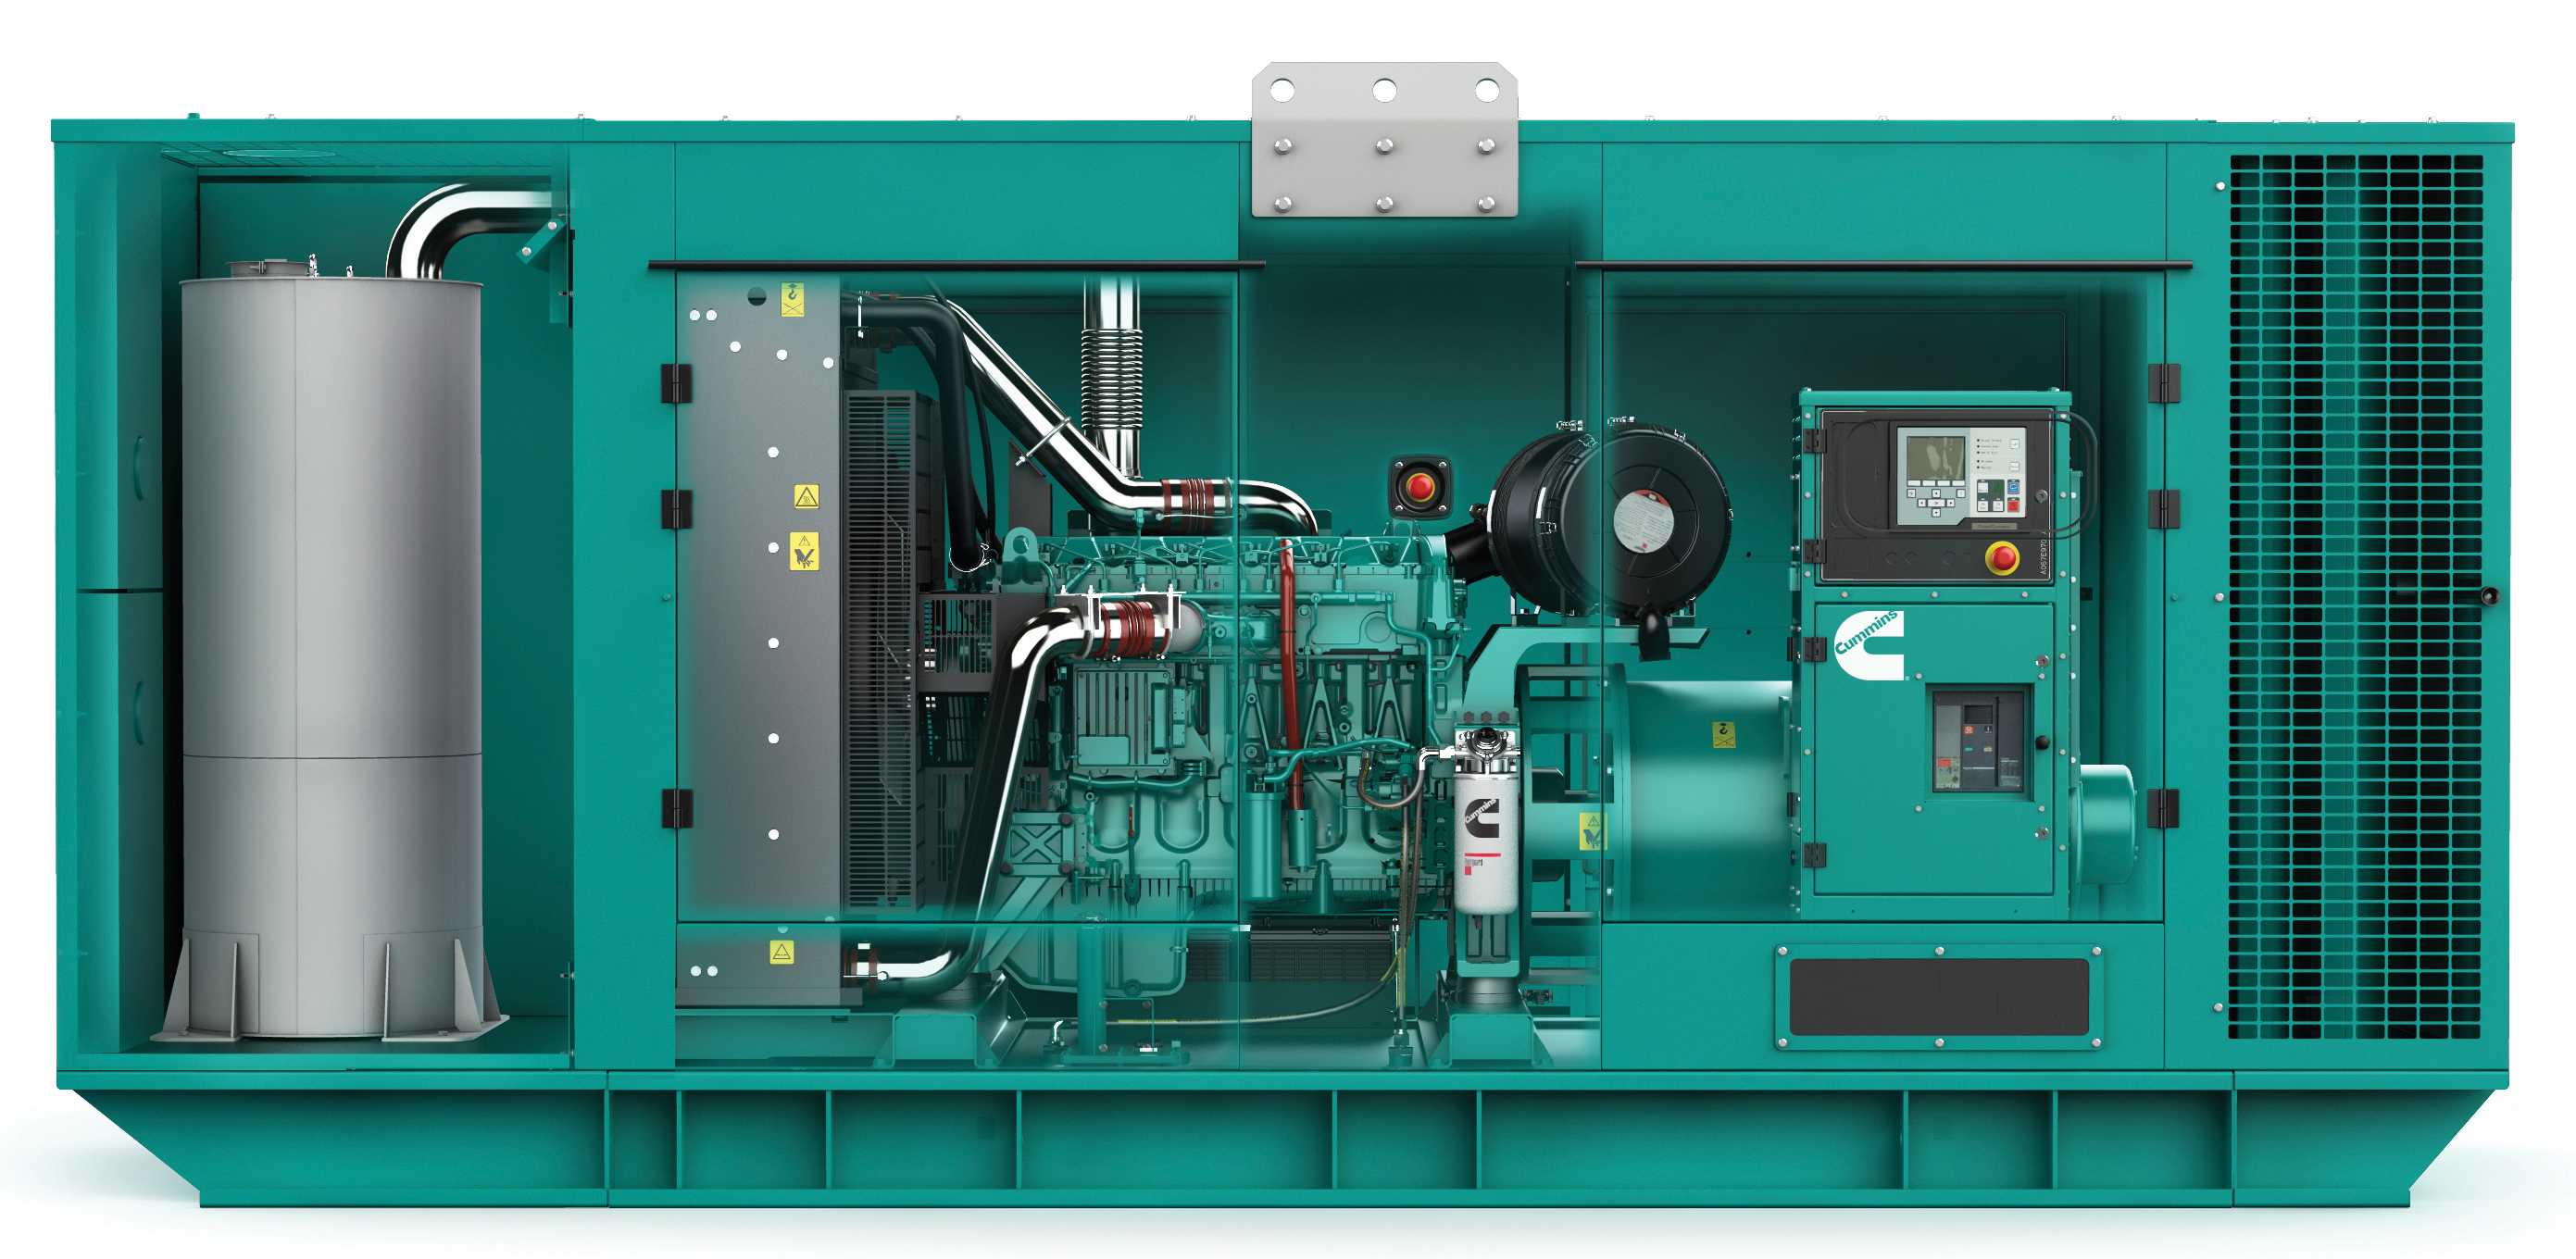 Cummins has announced the launch of the new C450 D5 genset model, as part of the new QSG12 diesel engine series. With an improved design and an advanced ...